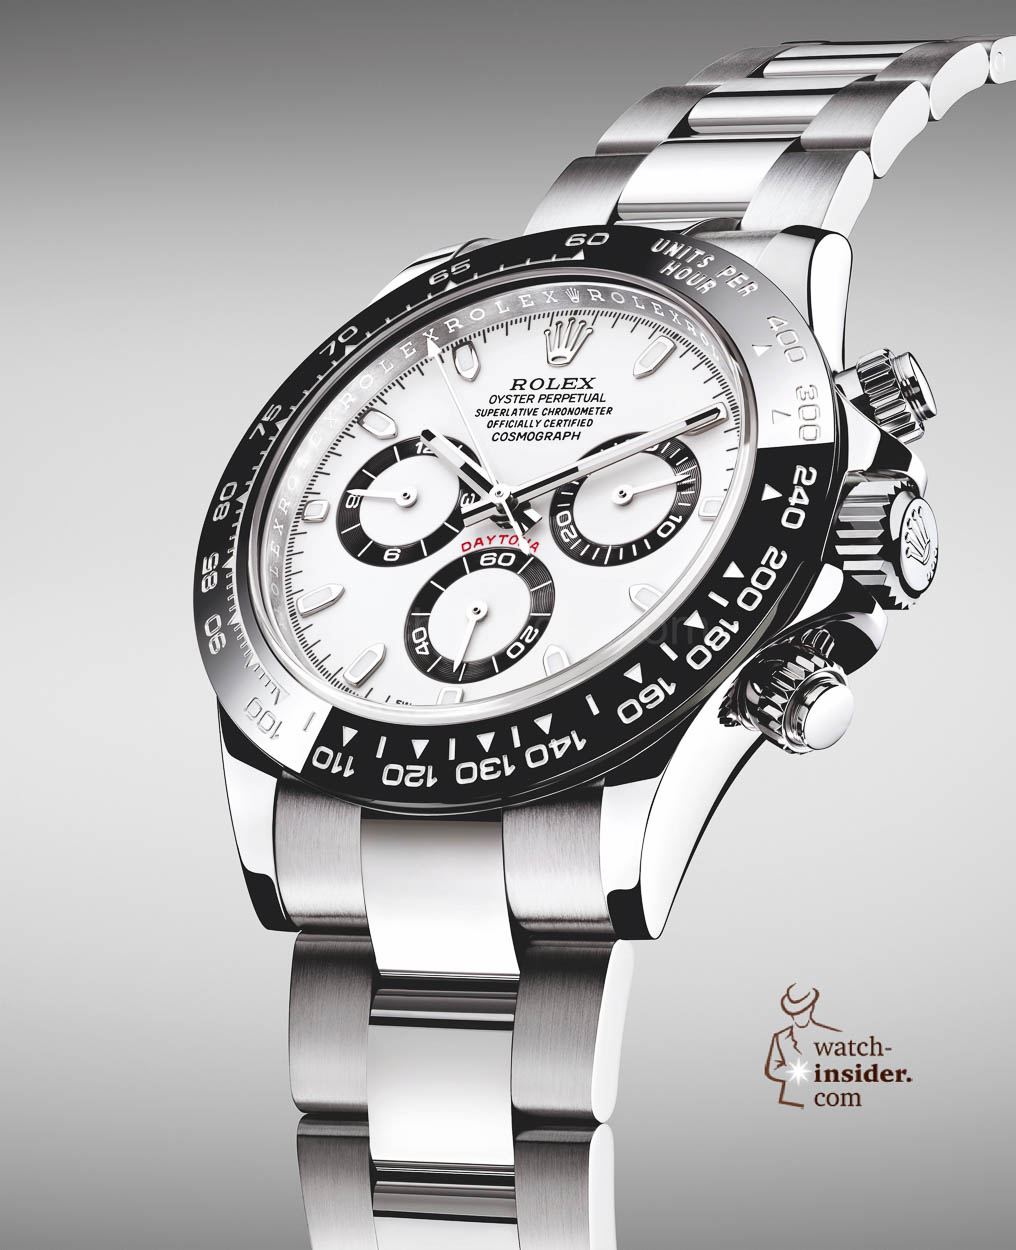 5dca47e5ce1 10 Swiss watch brands benchmarking the industry. by Alexander Linz. Rolex  Oyster Perpetual Cosmograph Daytona